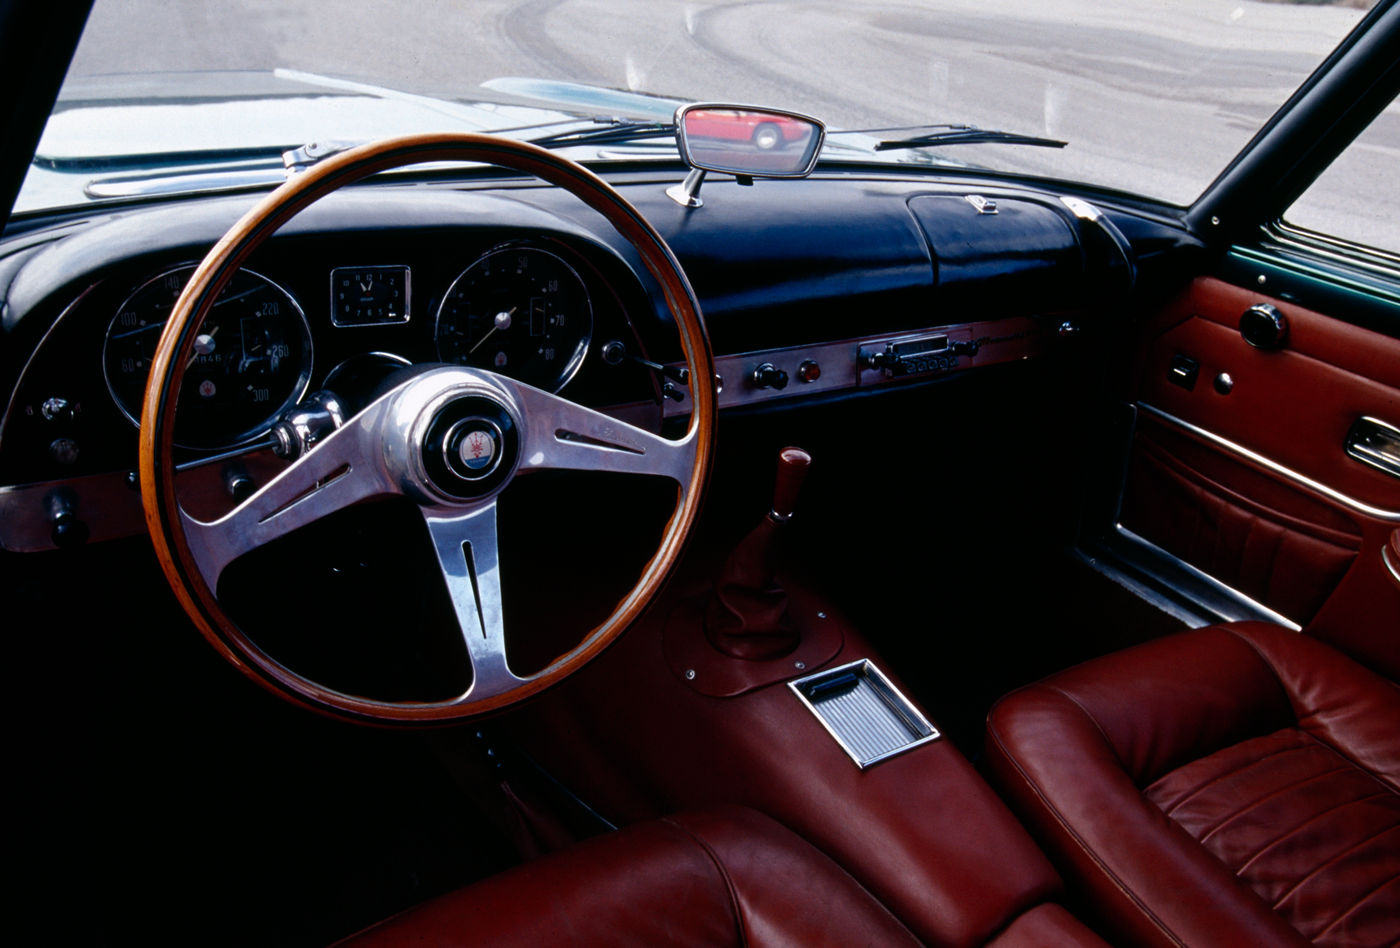 1957 Maserati 5000 GT - interior view of the classic car model in blue